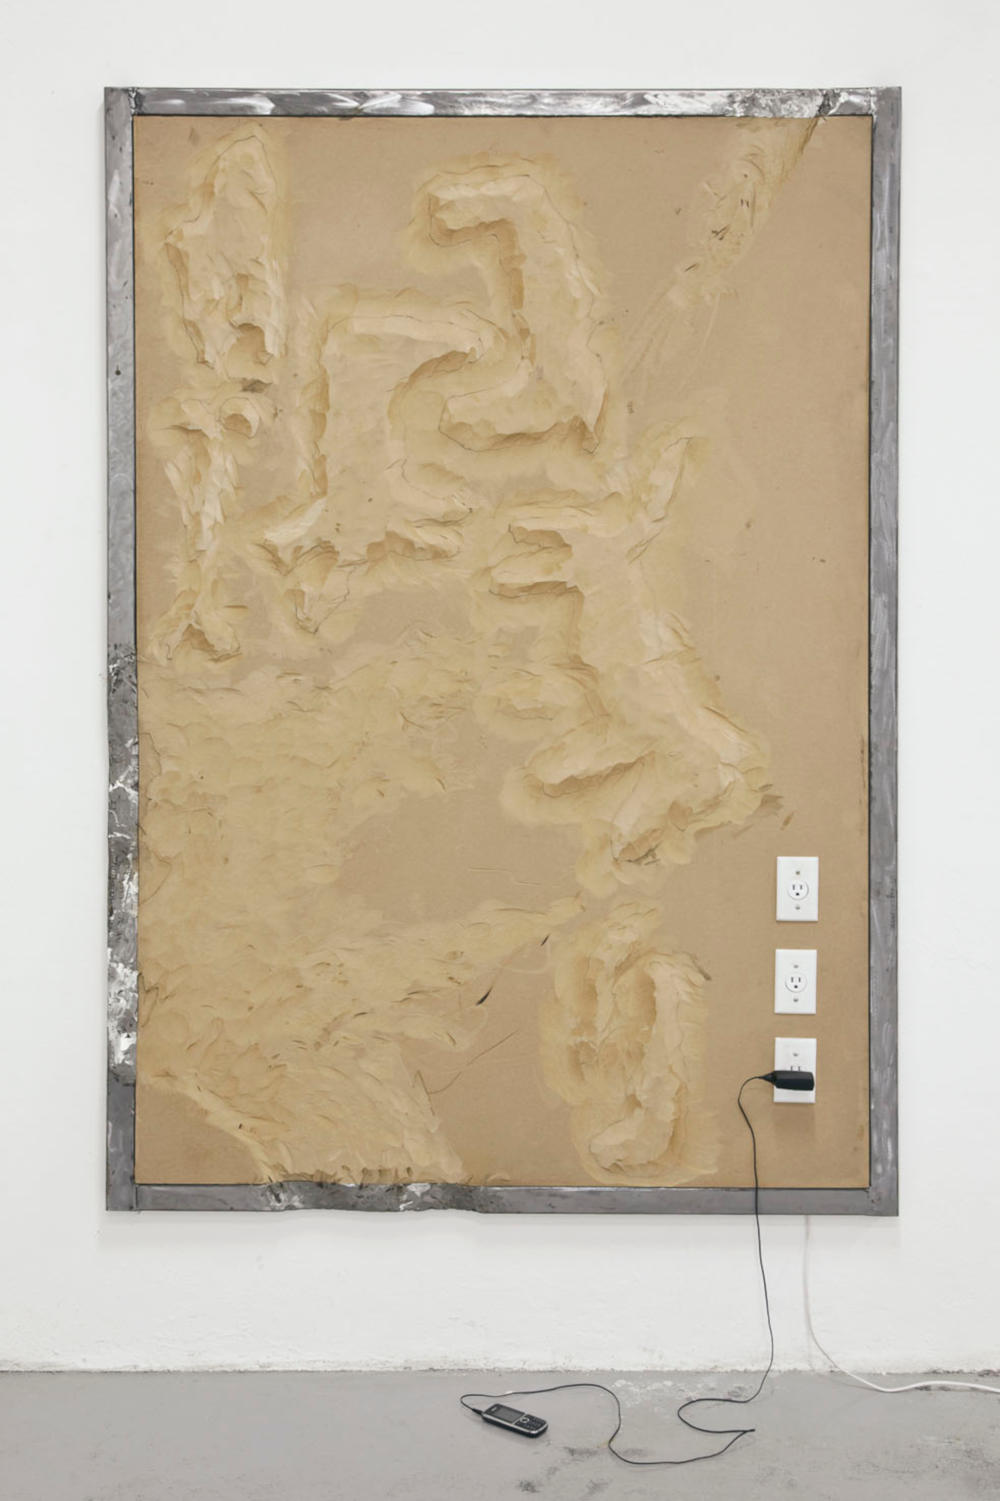 Neil Beloufa, Dogs from the Series Vintage, 2012. Compressed wood, electrical socket, iron structure 140x200x6cm